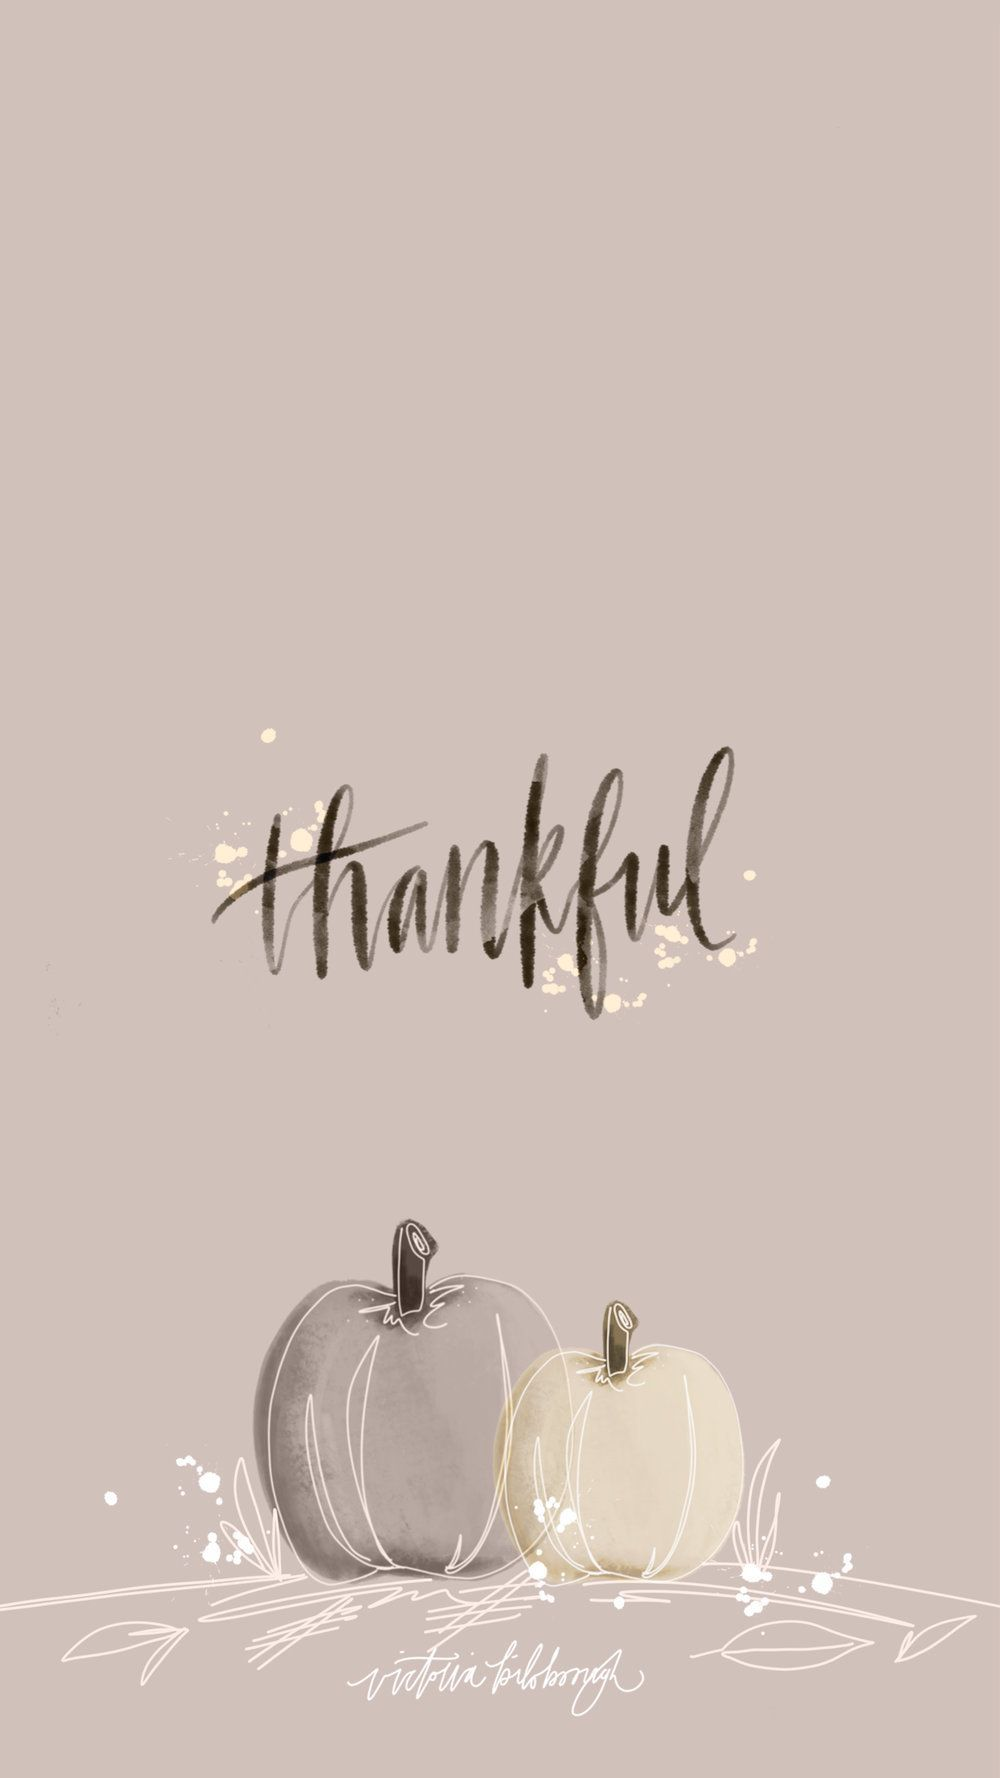 Thanksgiving Aesthetic Wallpapers - Top